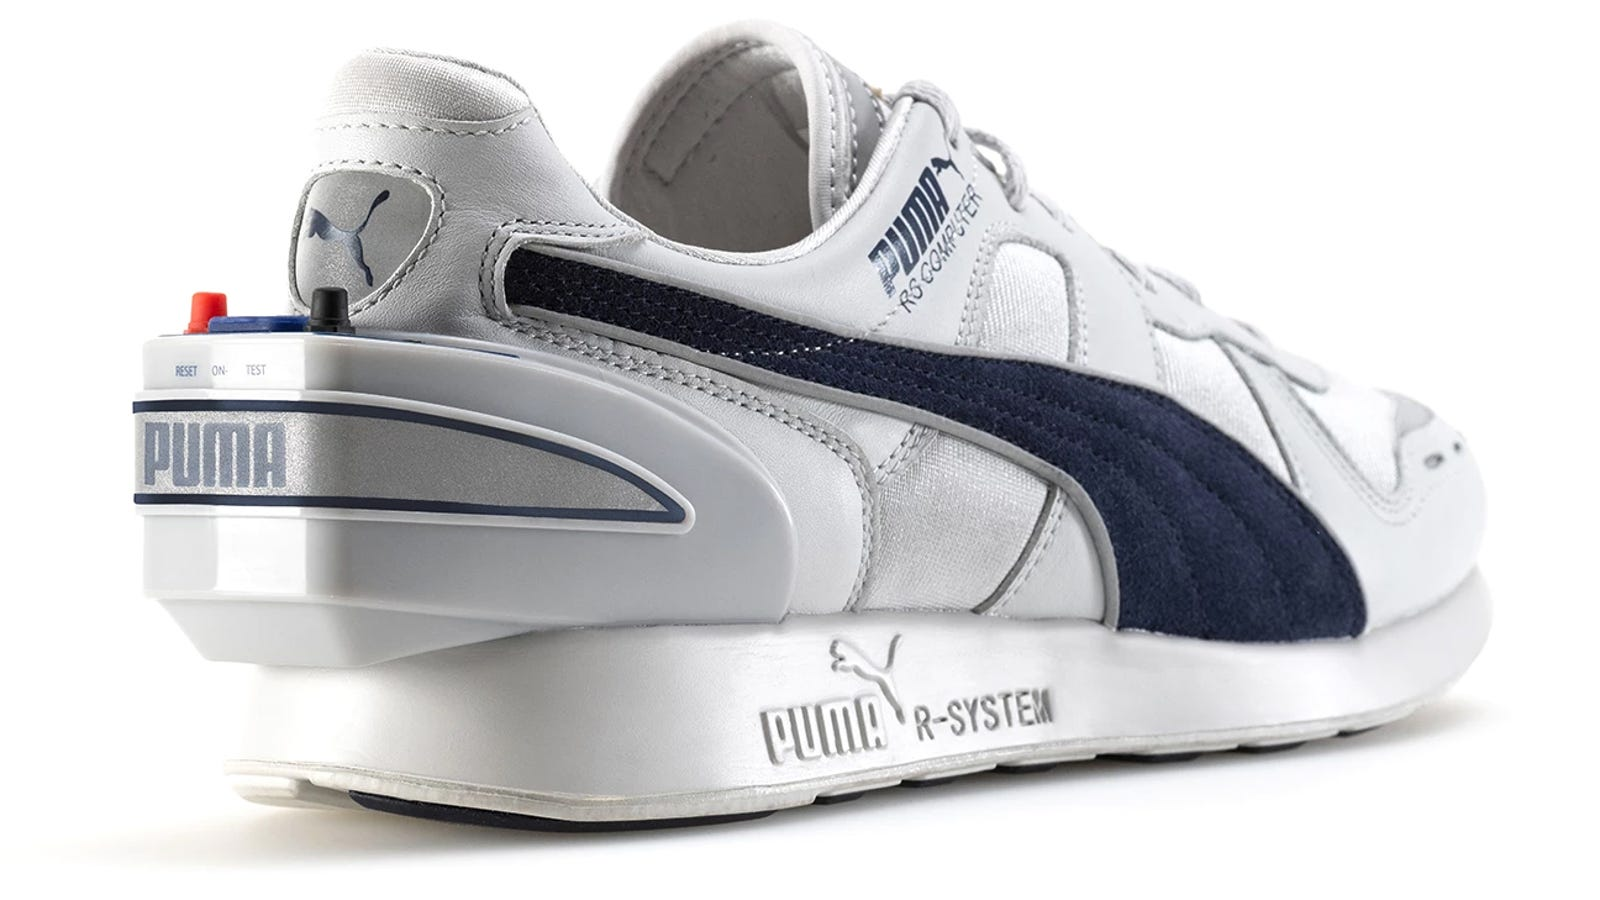 Puma Is Re-Releasing Its 32-Year-Old Smart Shoe That Was Lightyears Ahead of Its Time